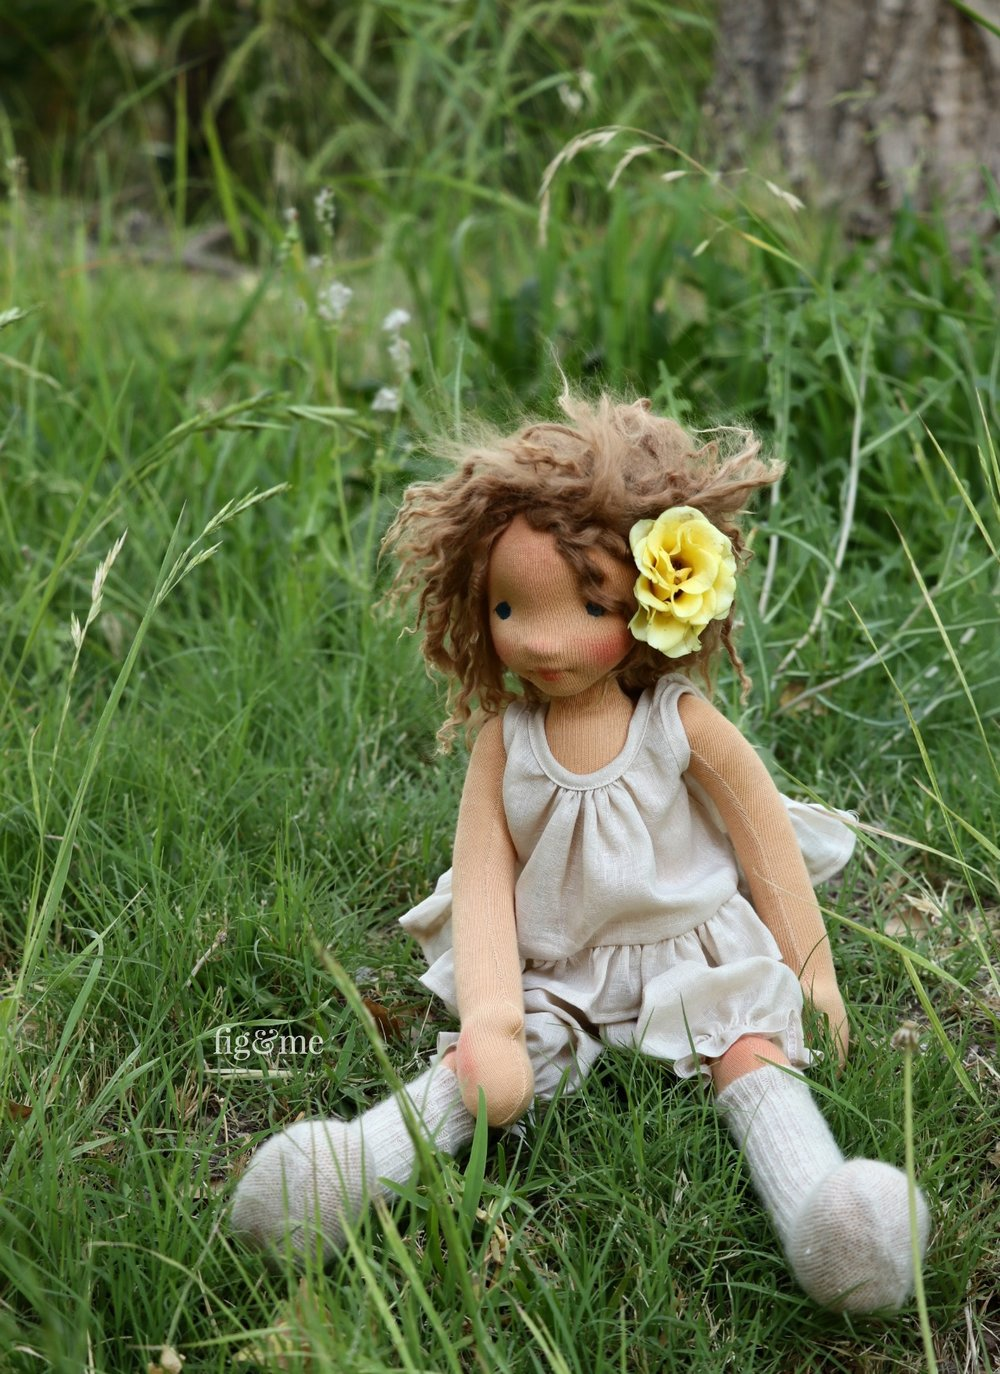 Anne, a contemporary all-natural art doll by Fig and Me.